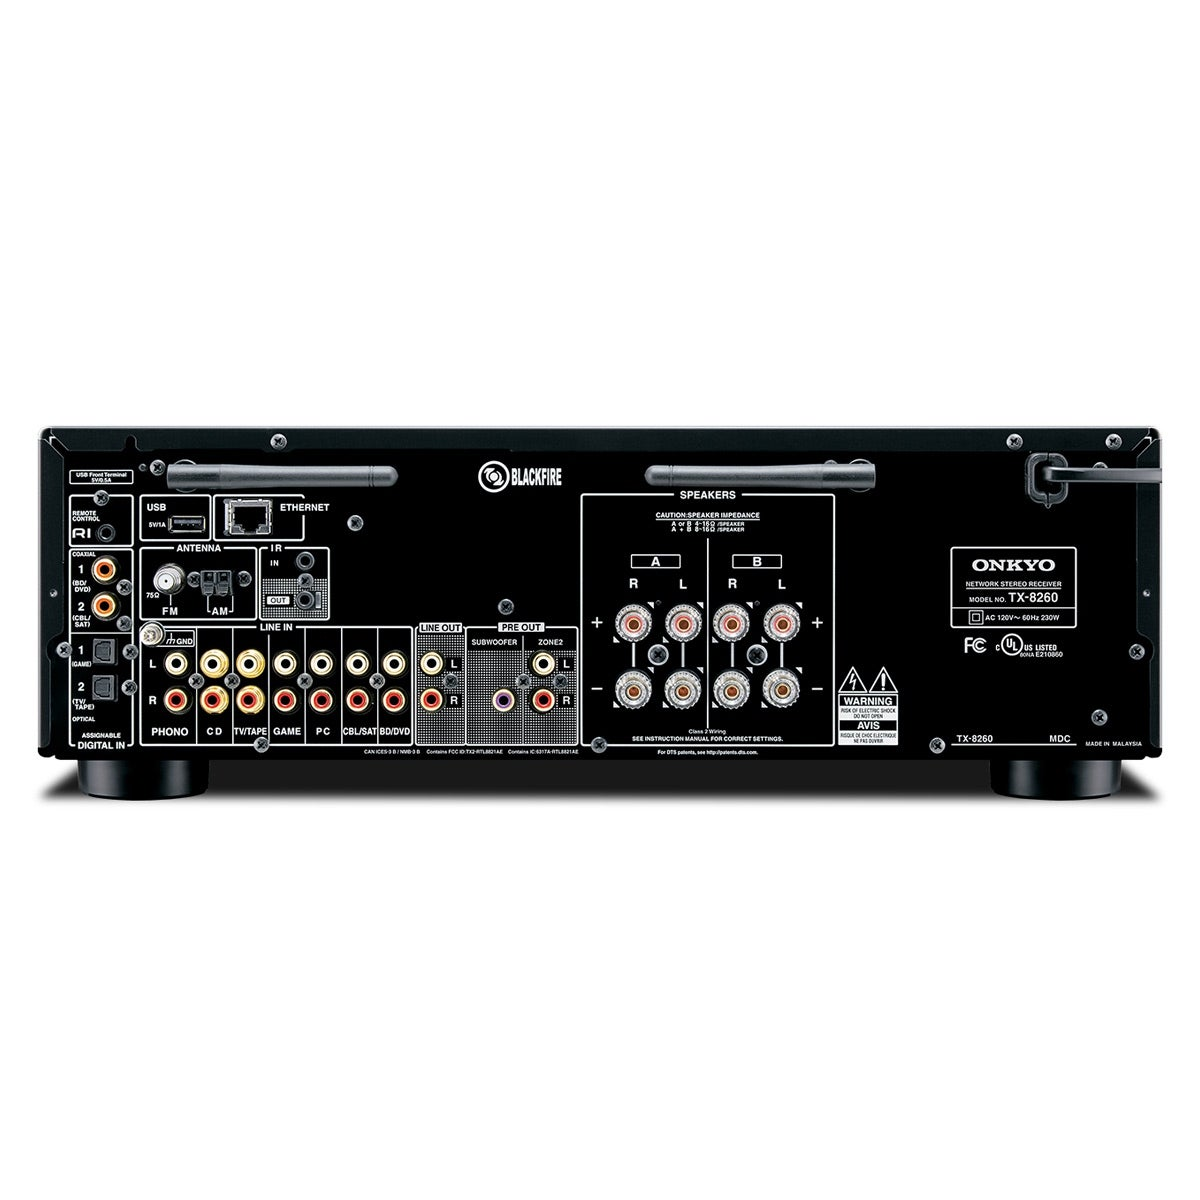 Shop Onkyo TX-8260 Network Stereo Receiver with Built-In Wi-Fi and ...